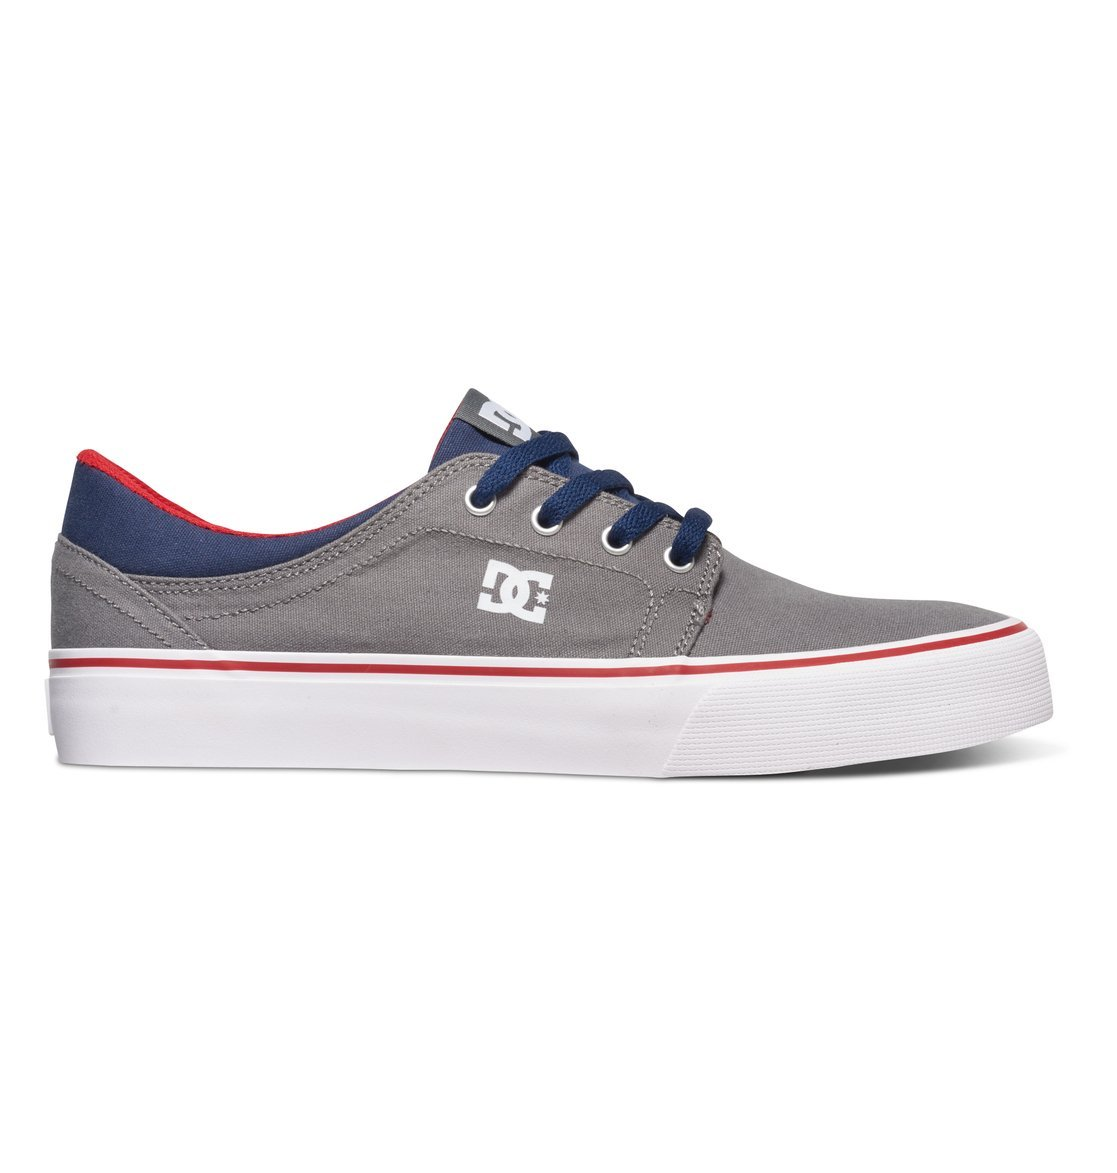 DC Men's Trase TX Unisex Skate Shoe B019DYK0RG 6 B(M) US|Grey/Dark Navy